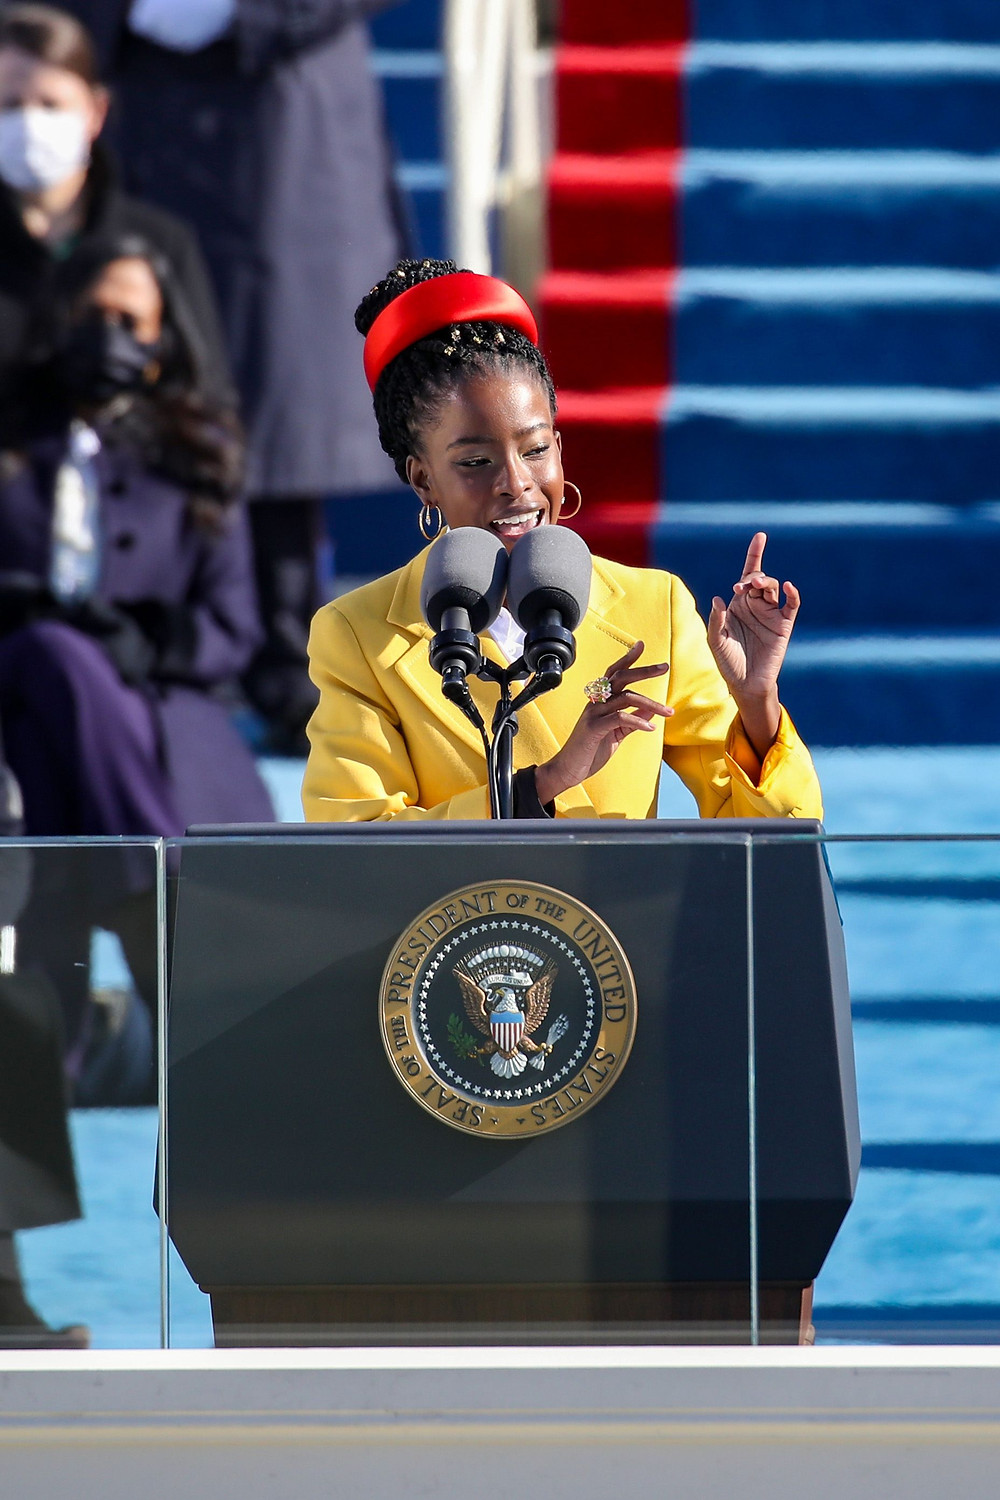 Amanda Gorman was the poet who read on Biden's Presidential Inauguration. She is the current United States Poet Laureate. In 2017, she became the United States of America's first National Youth Poet Laureate. She is also an activist from Los Angeles, California. Gorman's work focuses on issues of oppression, feminism, race, and marginalization, as well as the African diaspora